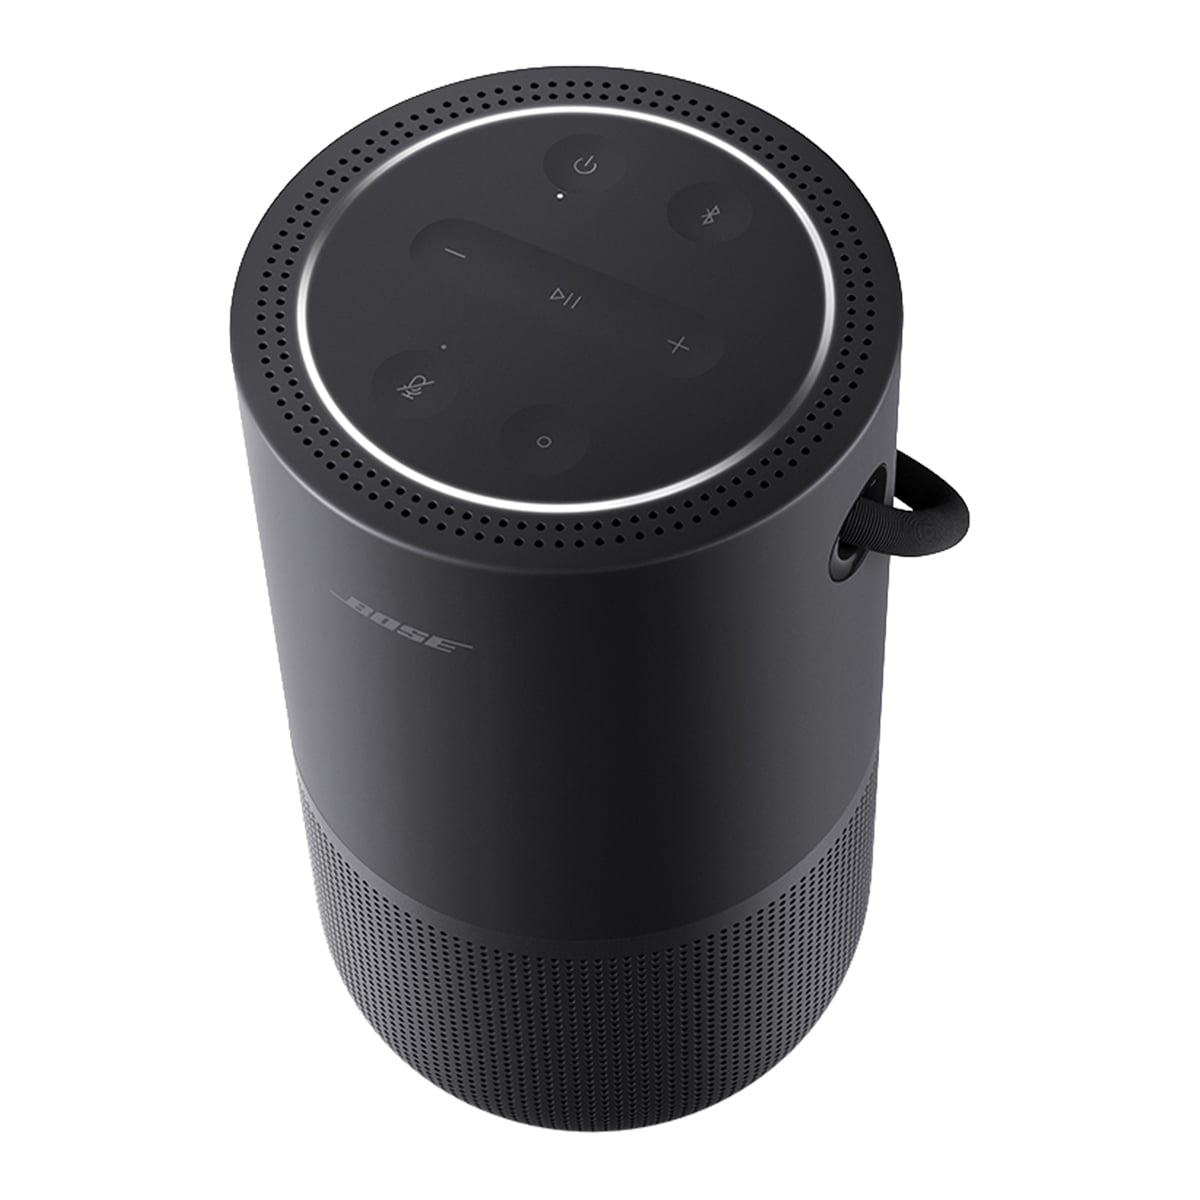 Bose-Portable-Home-Speaker thumbnail 9